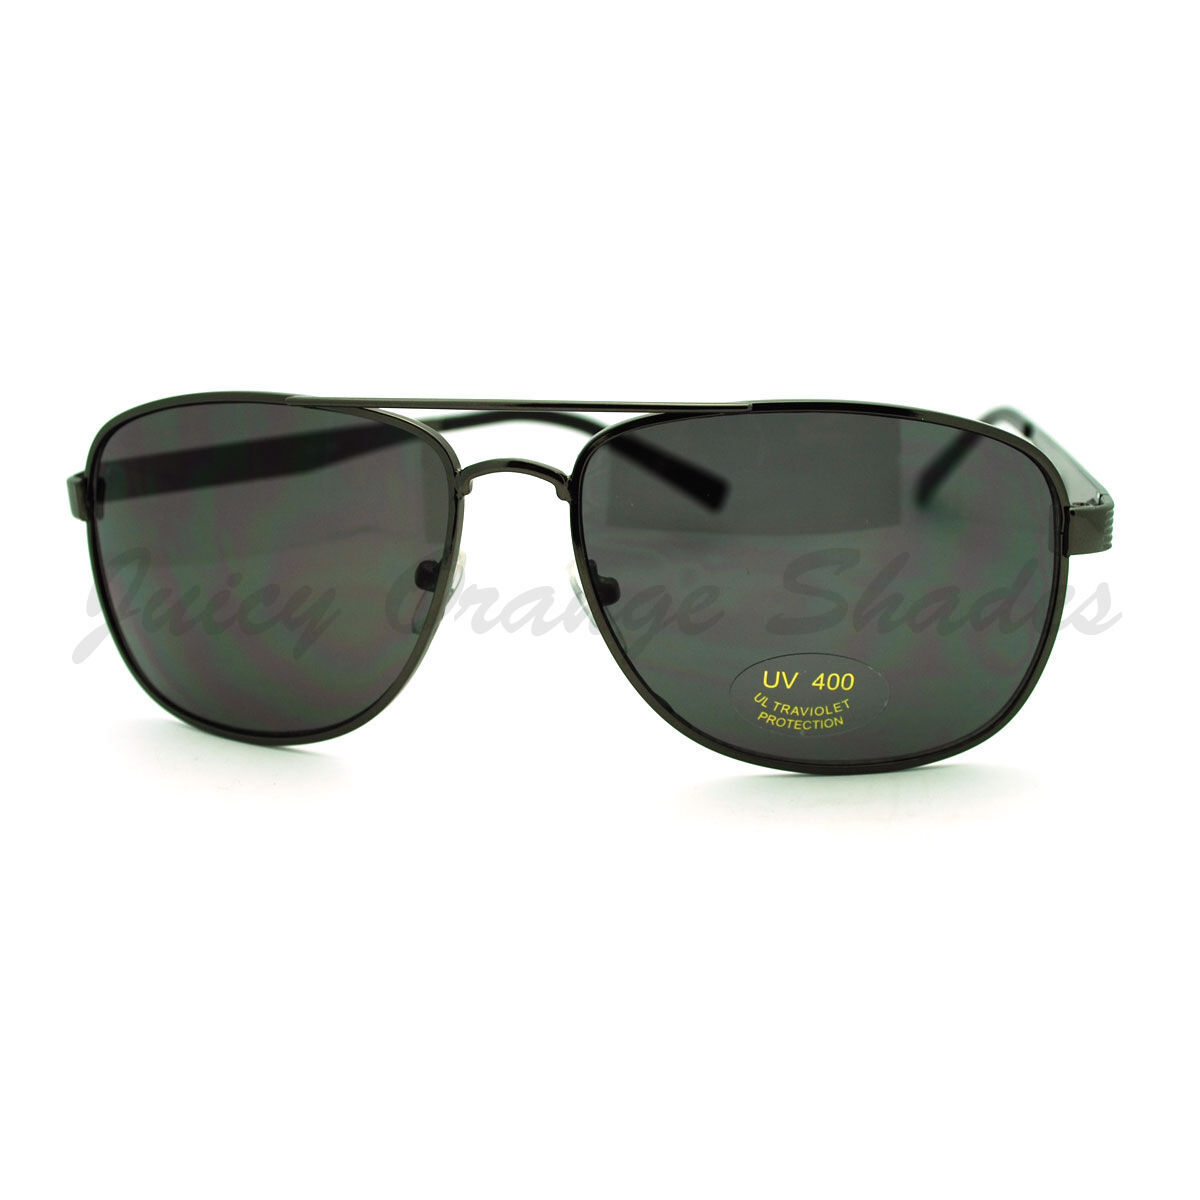 Navigator Sunglasses Square Aviator Flat Top Metal Frame